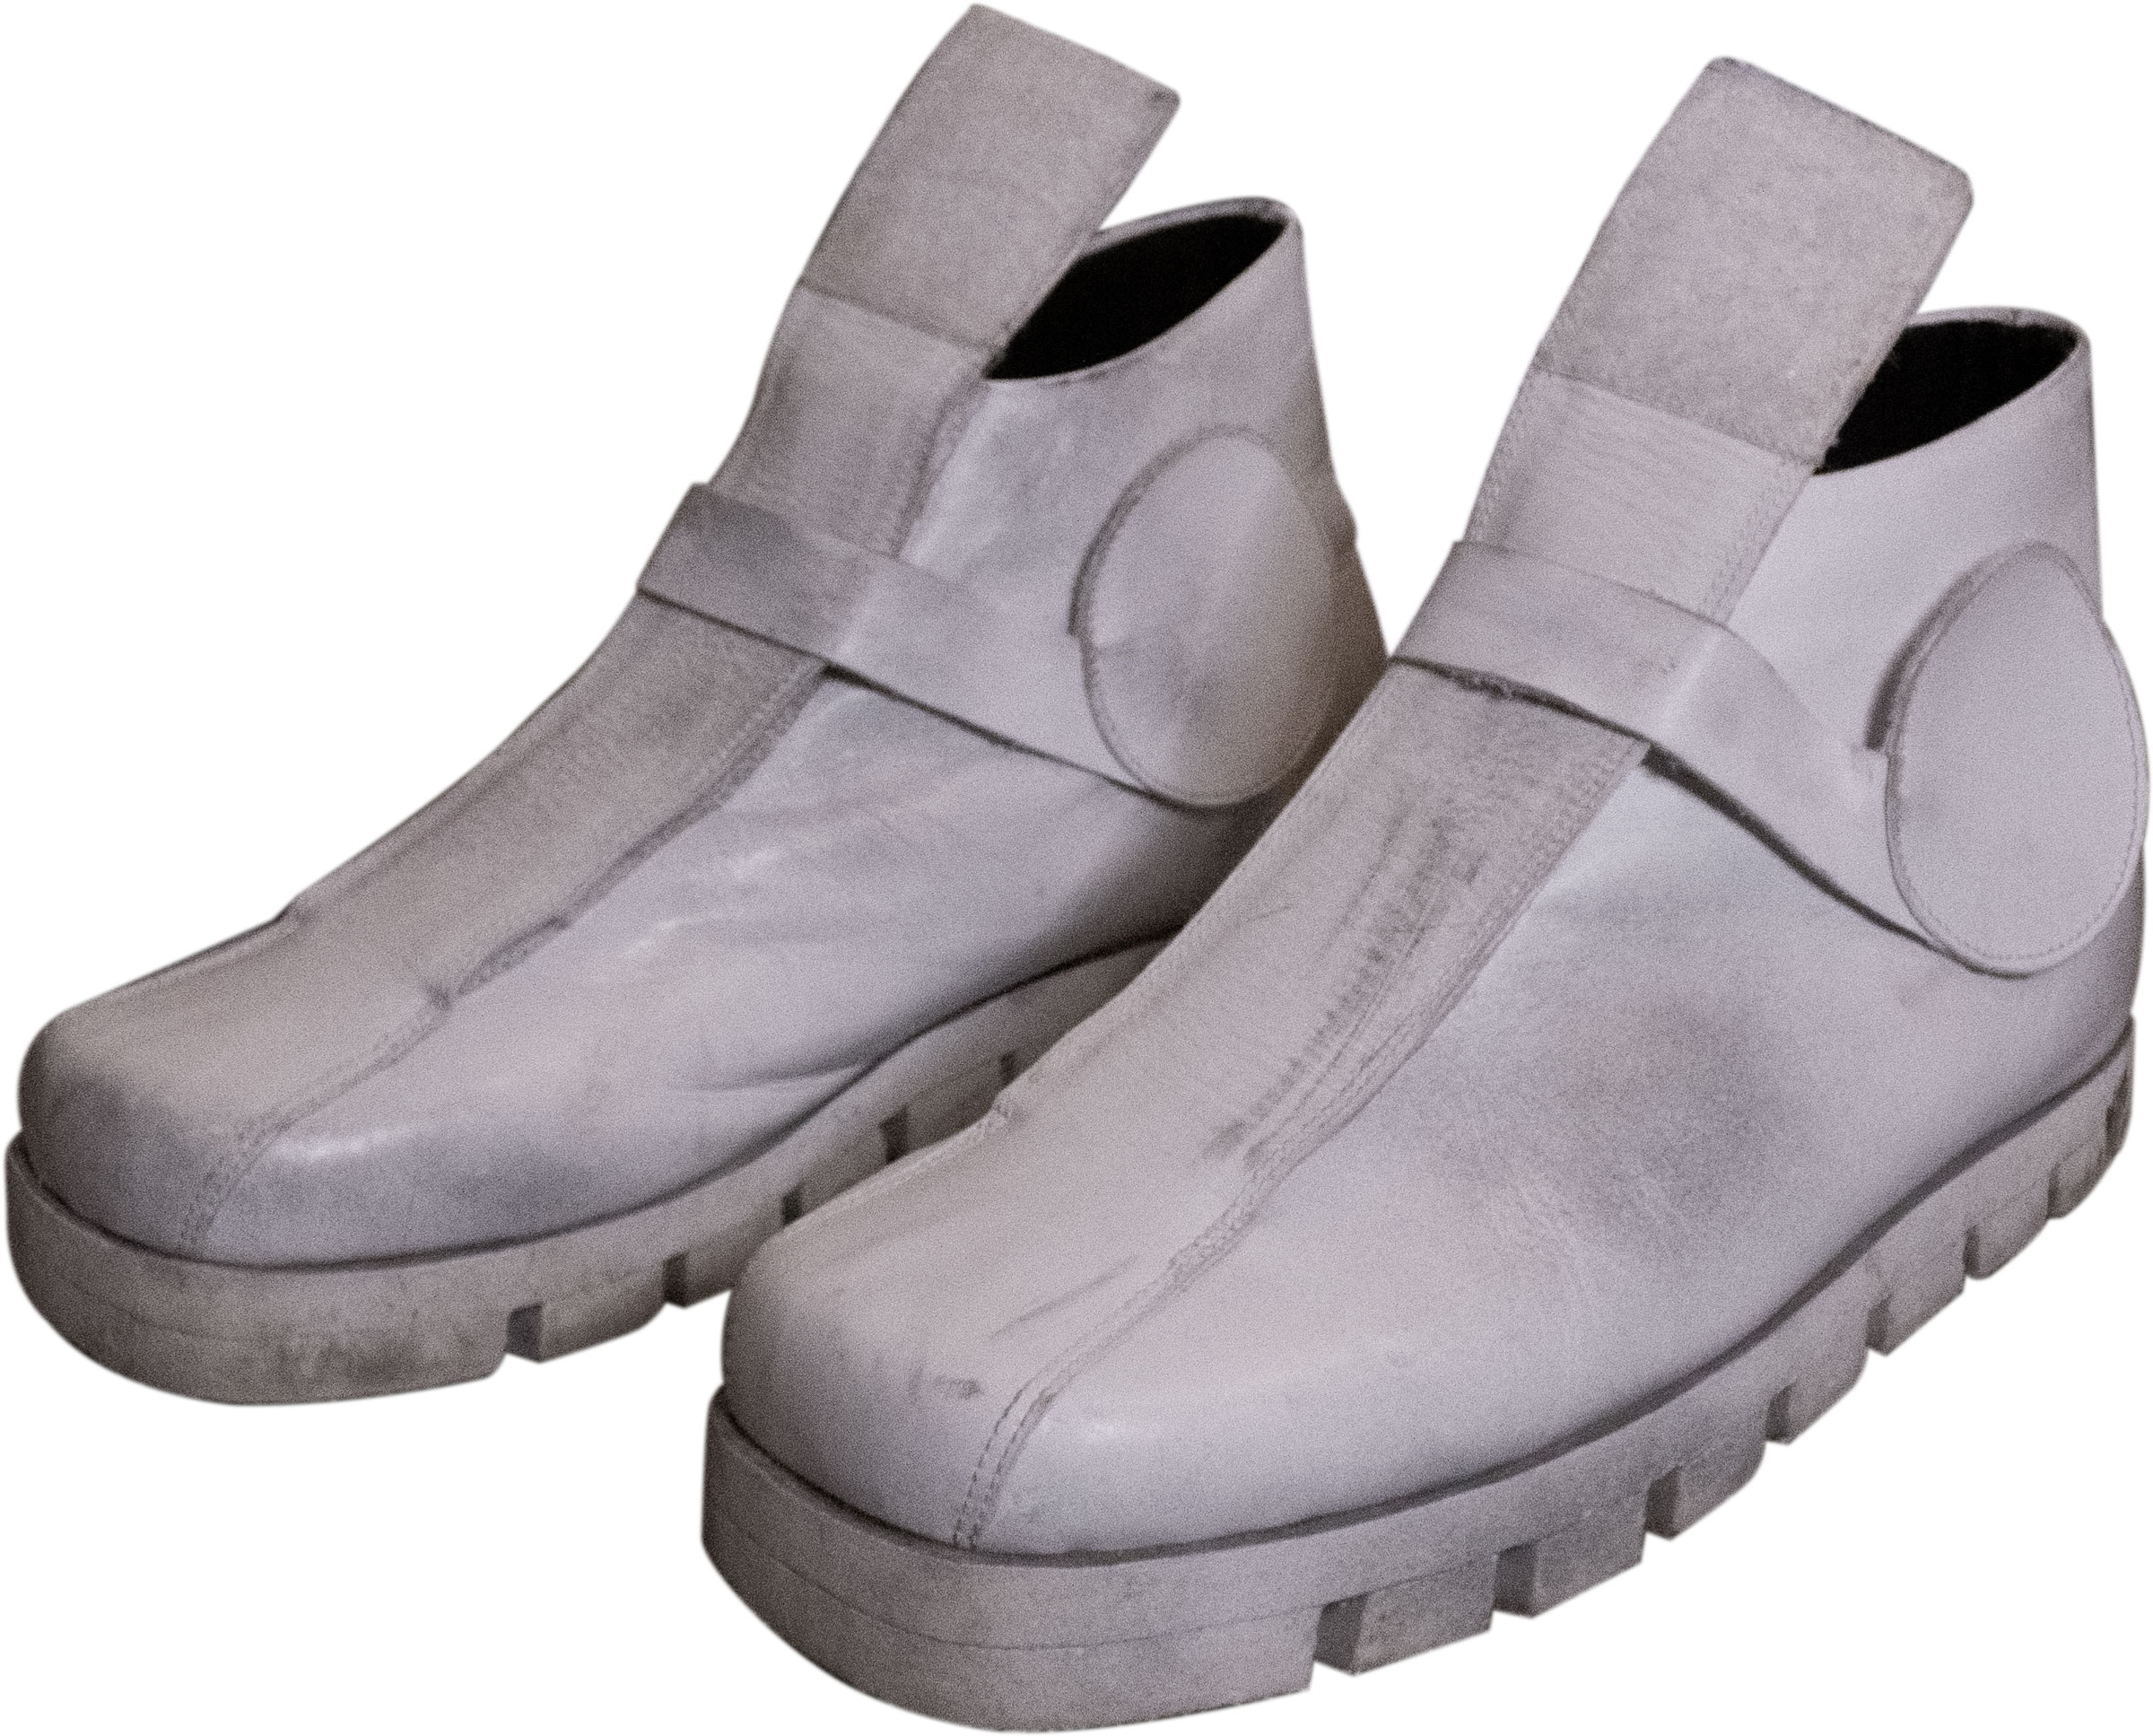 File:TC animated boots.jpg